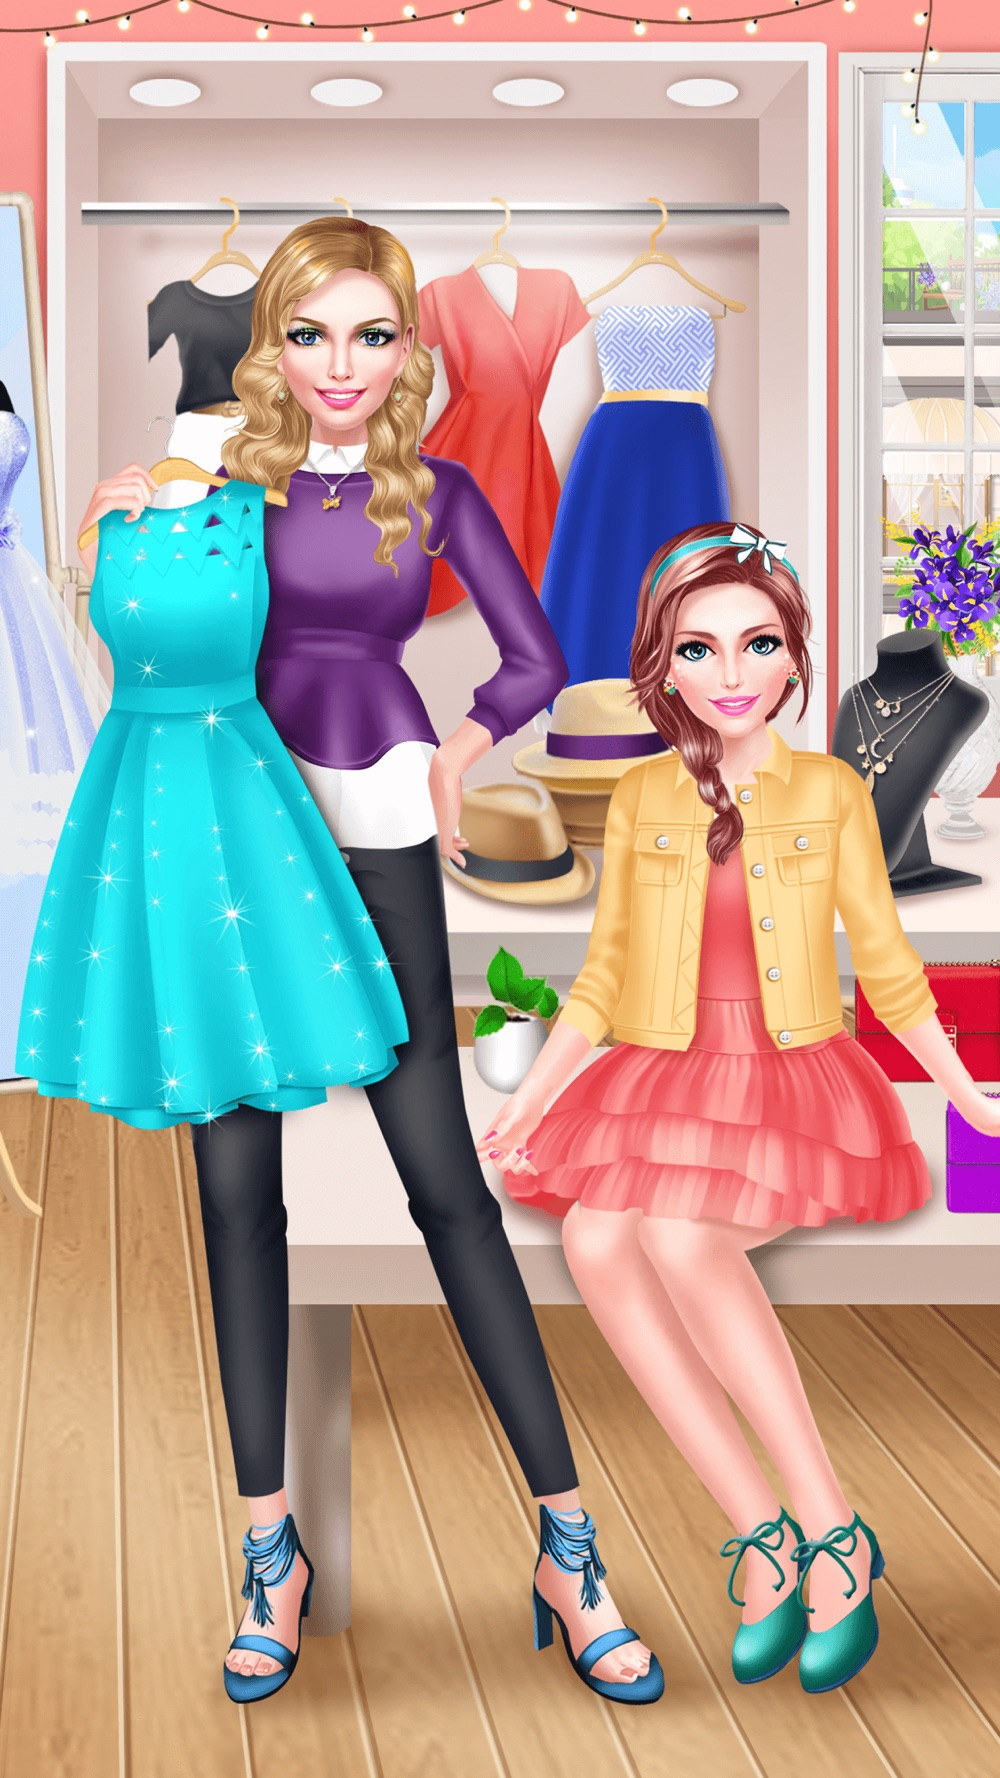 BFF Fashion Boutique Salon – Beauty Makeover Game